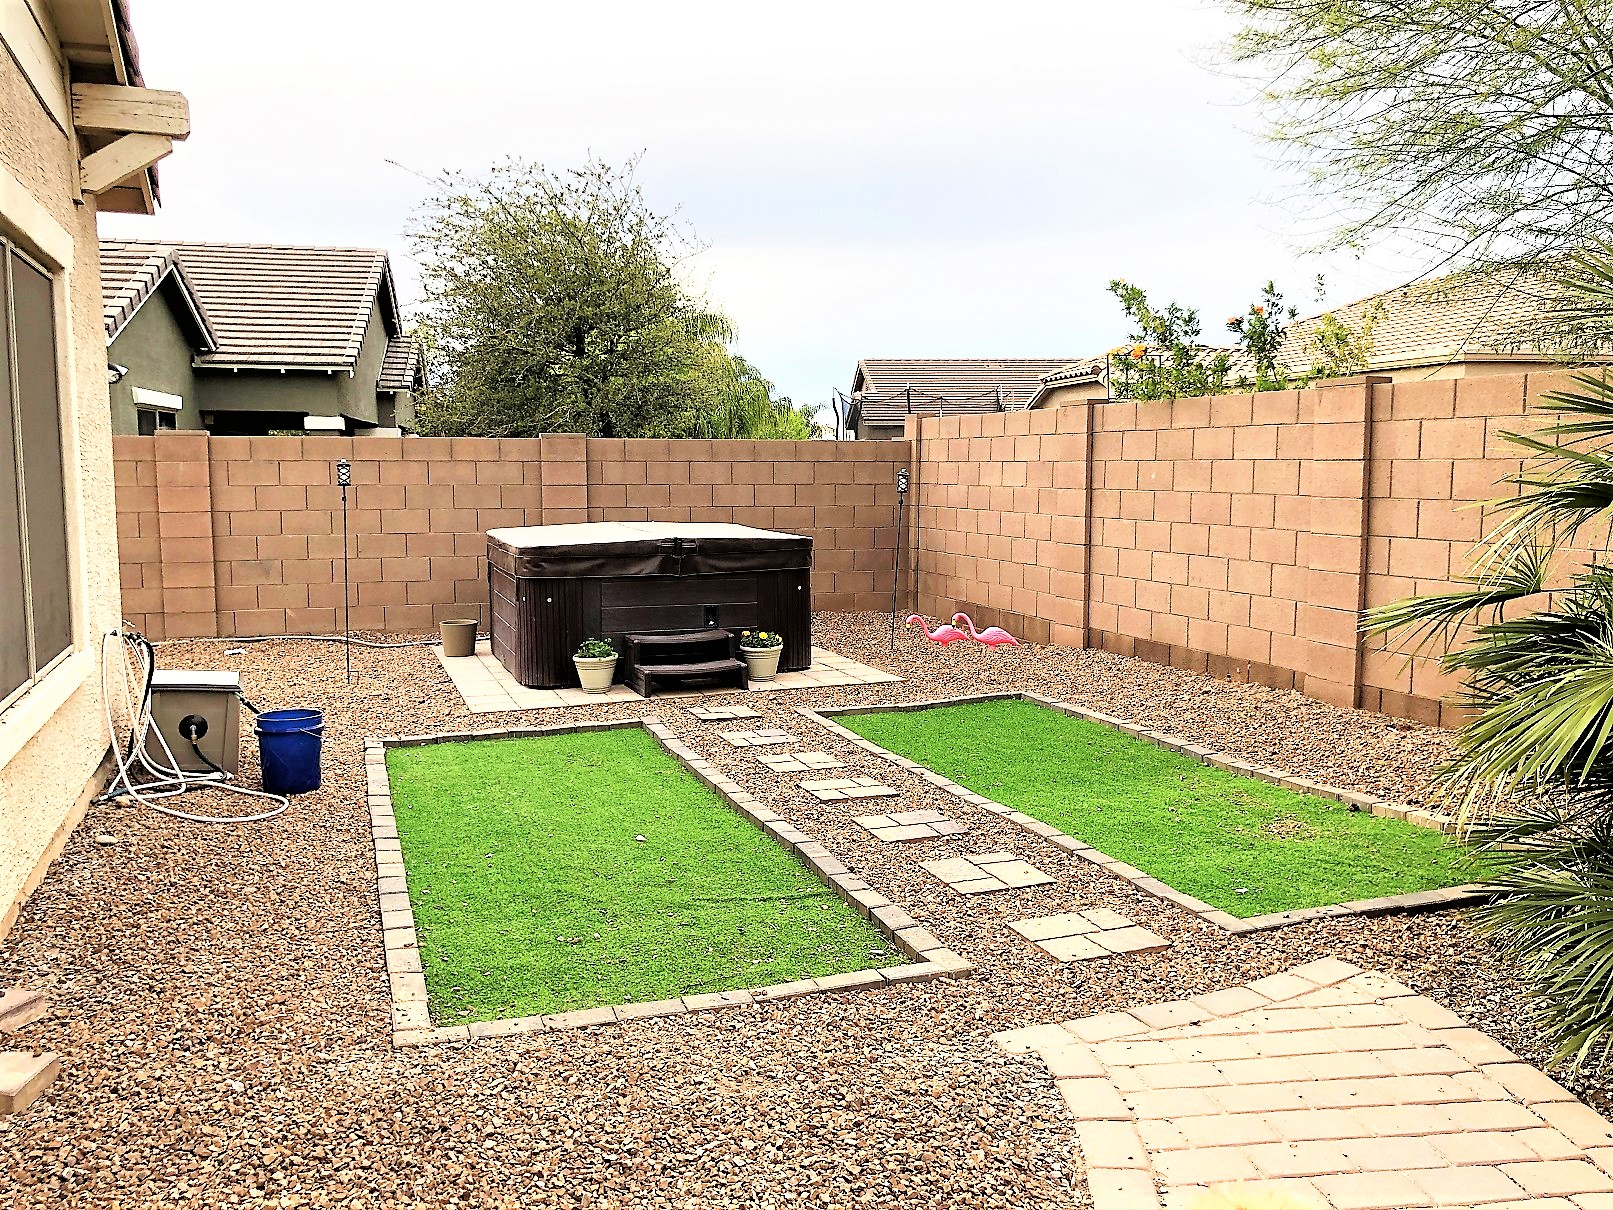 Finished yard with artificial turf and hot tub.